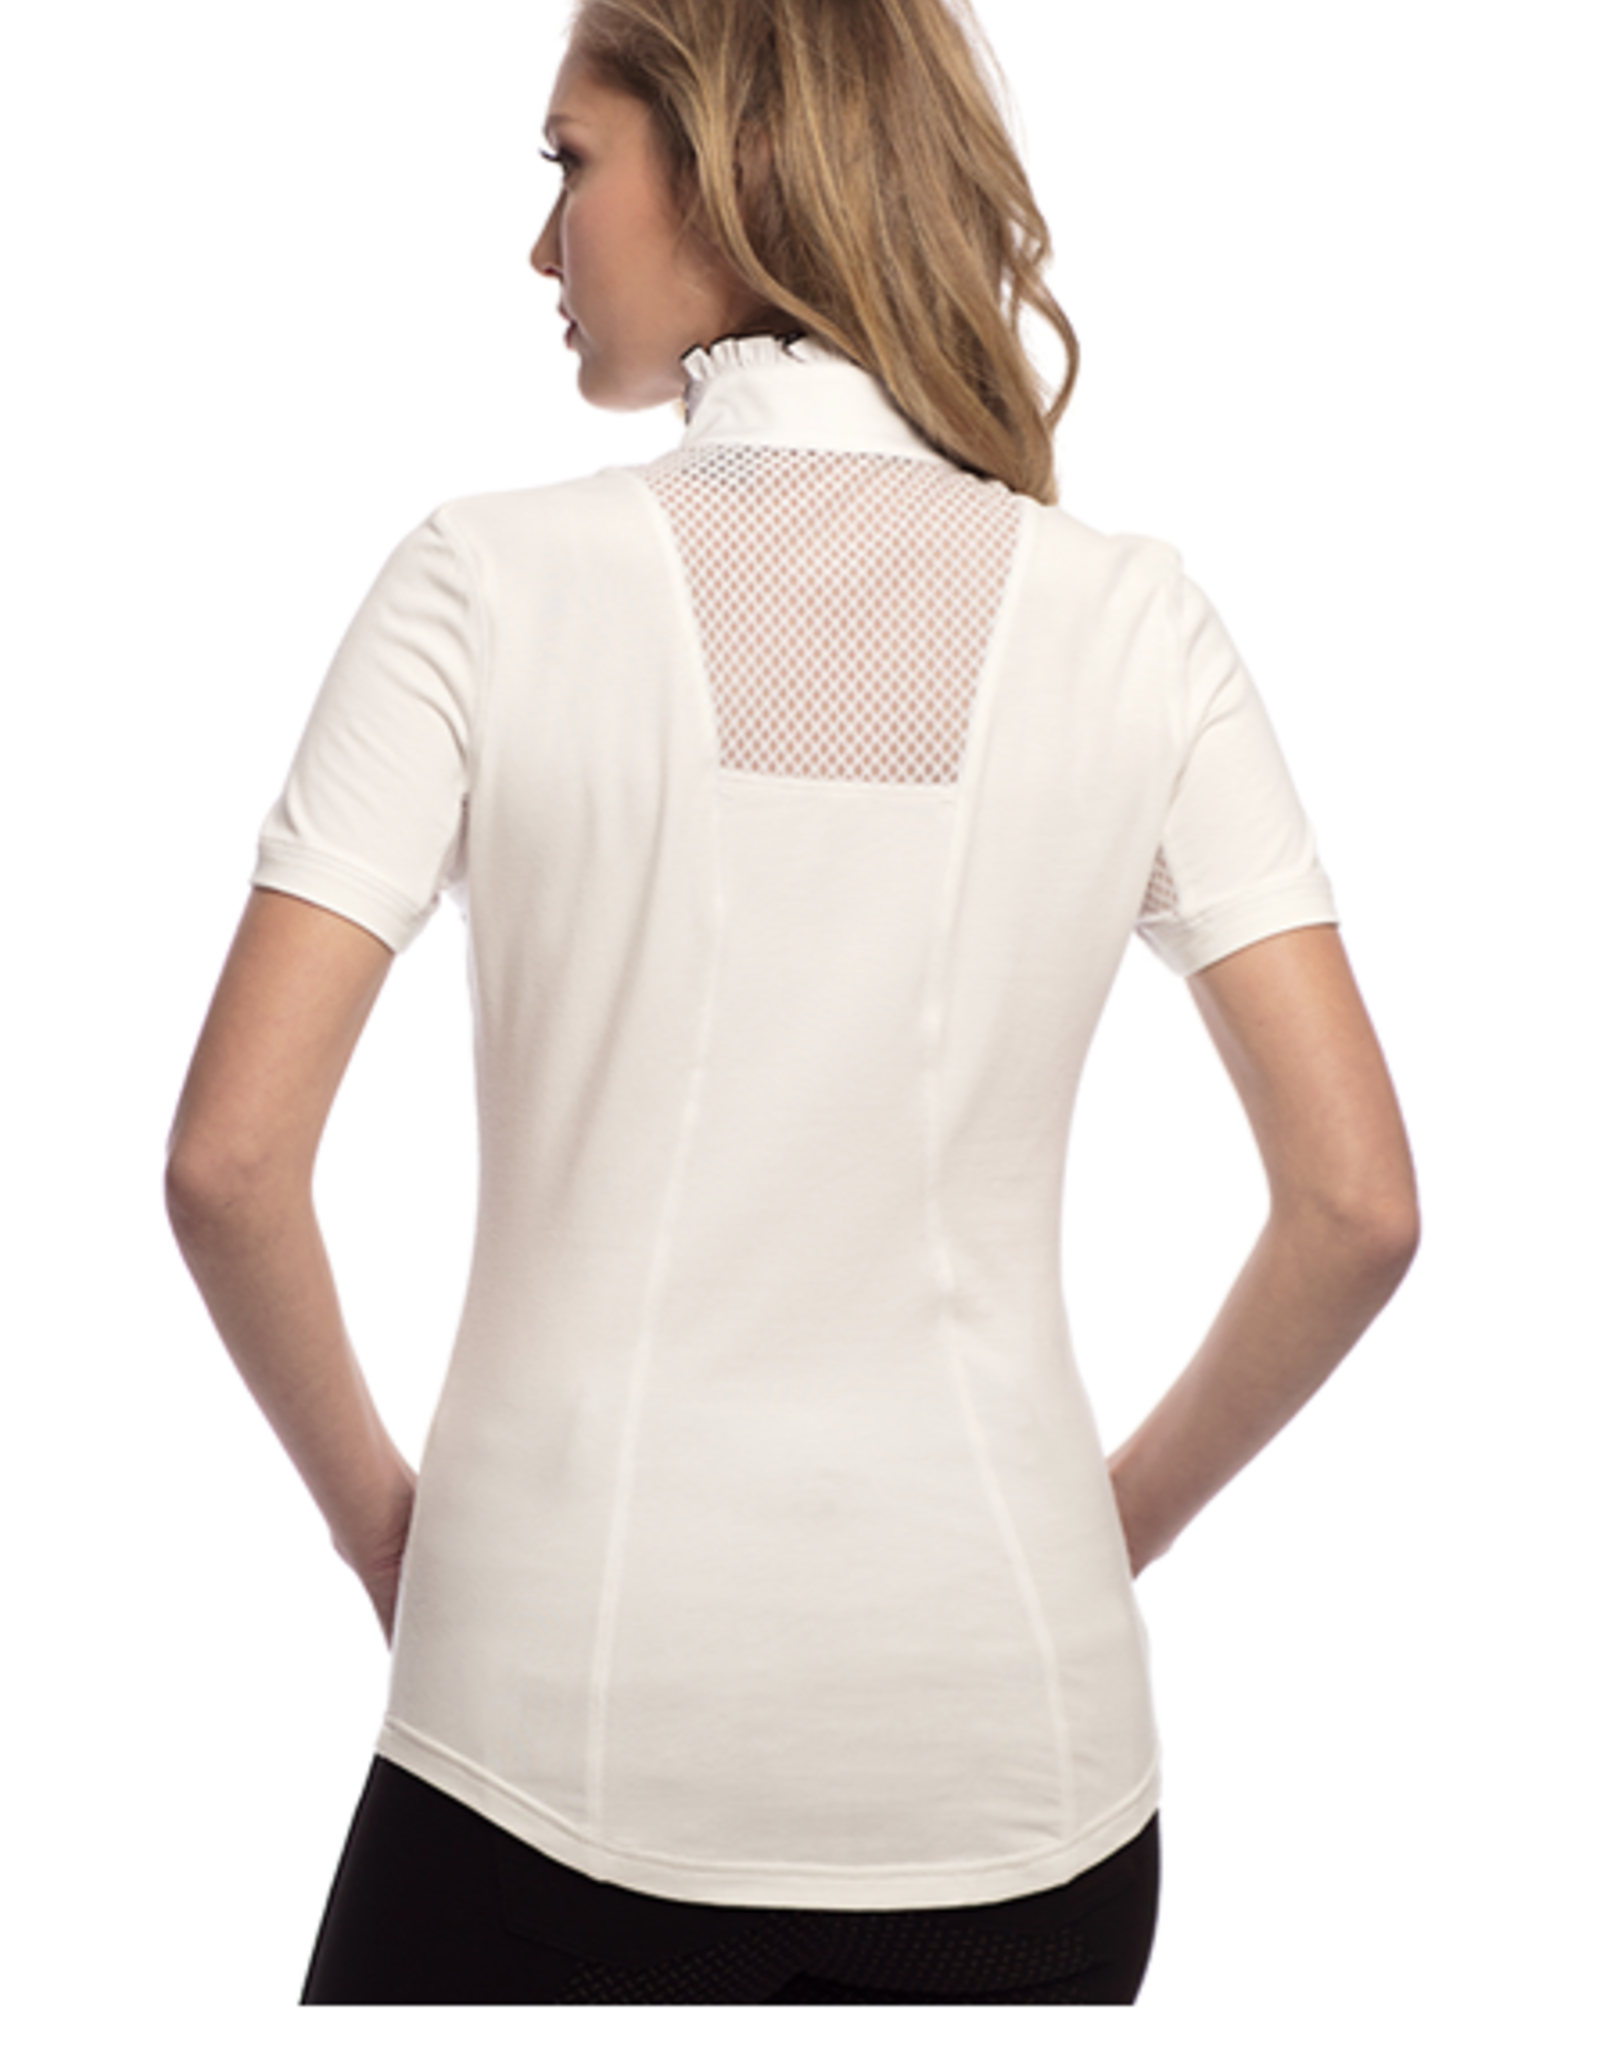 Goode Rider Ladies' Couture Show Shirt